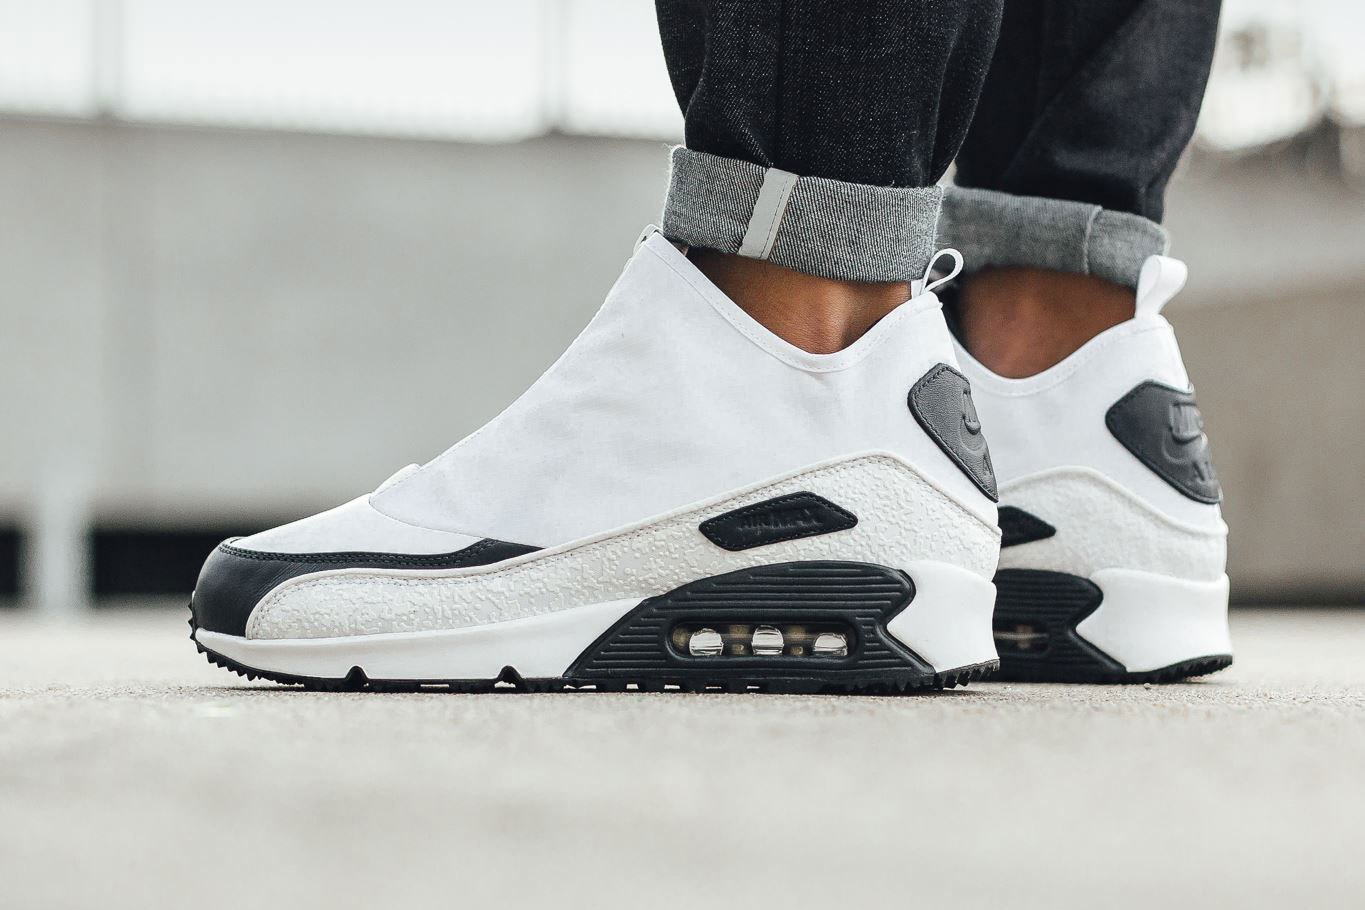 hot sale online 57456 195ca ... Nike Air Max 90 Utility White - TRENDS periodical